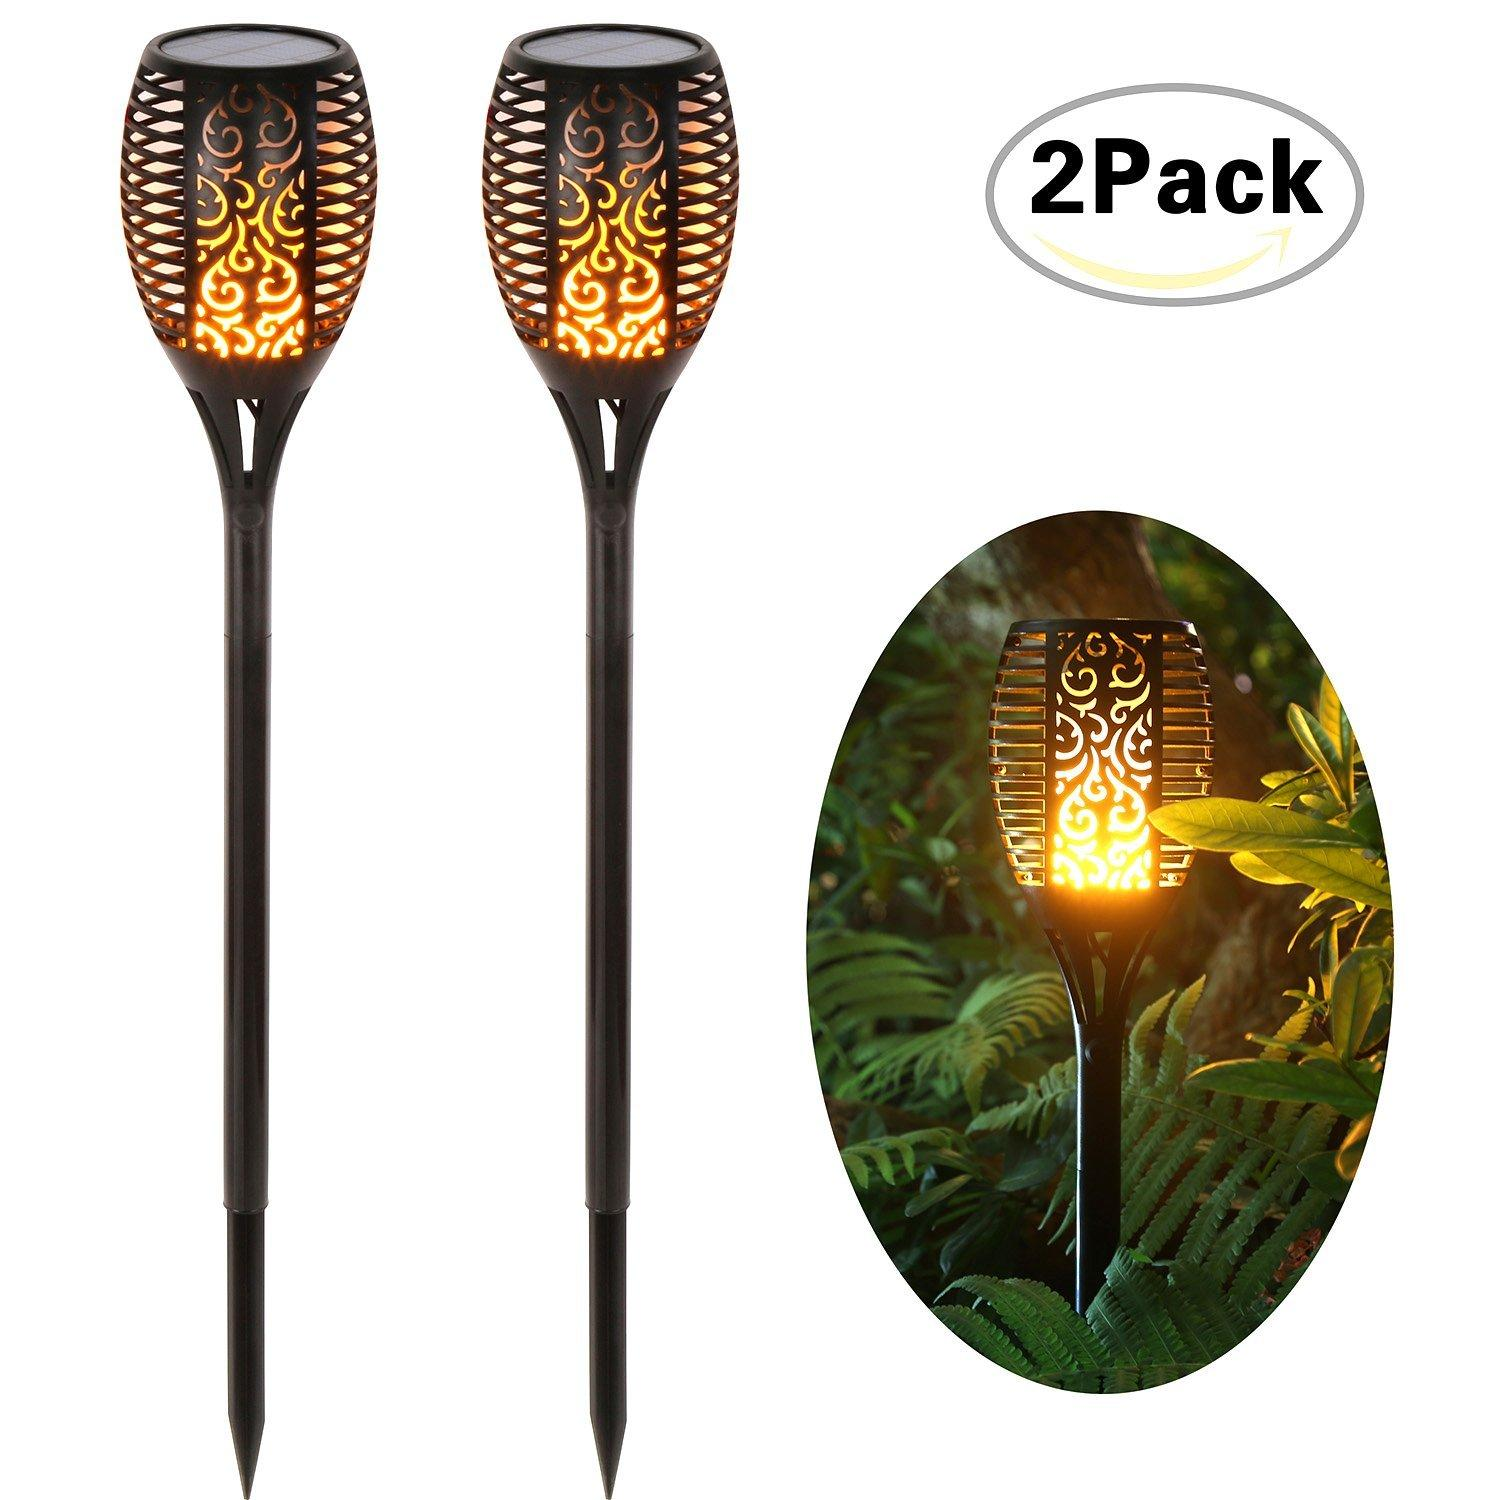 2 Pack Solar Lights Dancing Flames 96 LED Waterproof Wireless Flickering Torches Lantern Outdoor Garden Lamp for Patio Yard Driveway Pathway